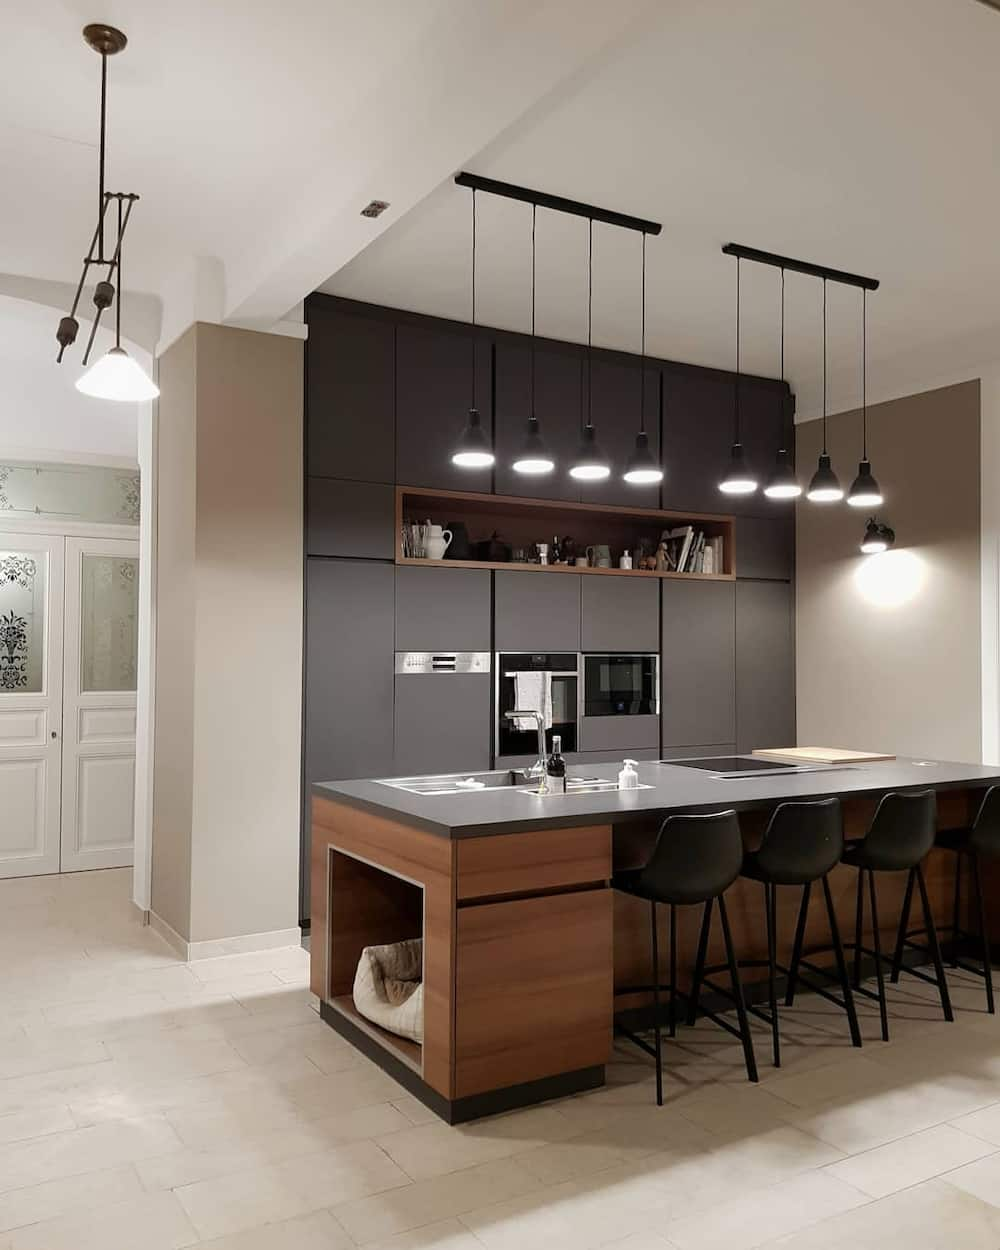 Kitchen designs South Africa prices